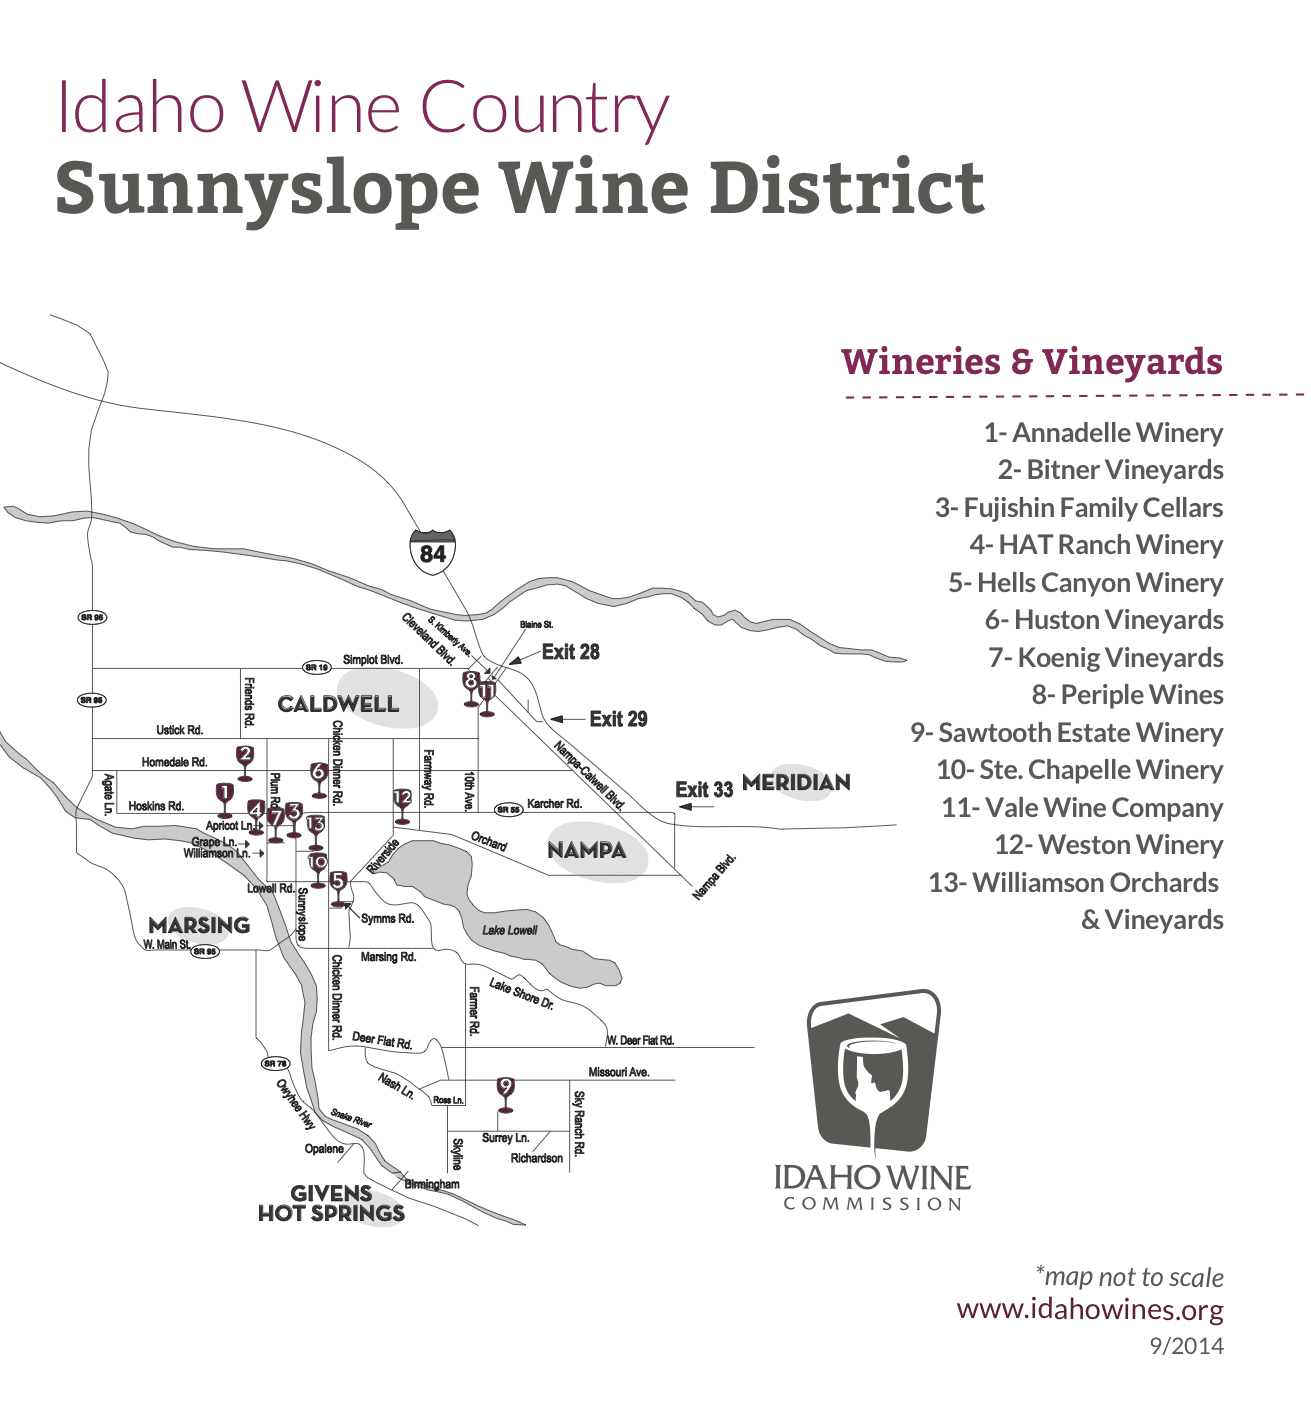 Sunnyslope Wine District